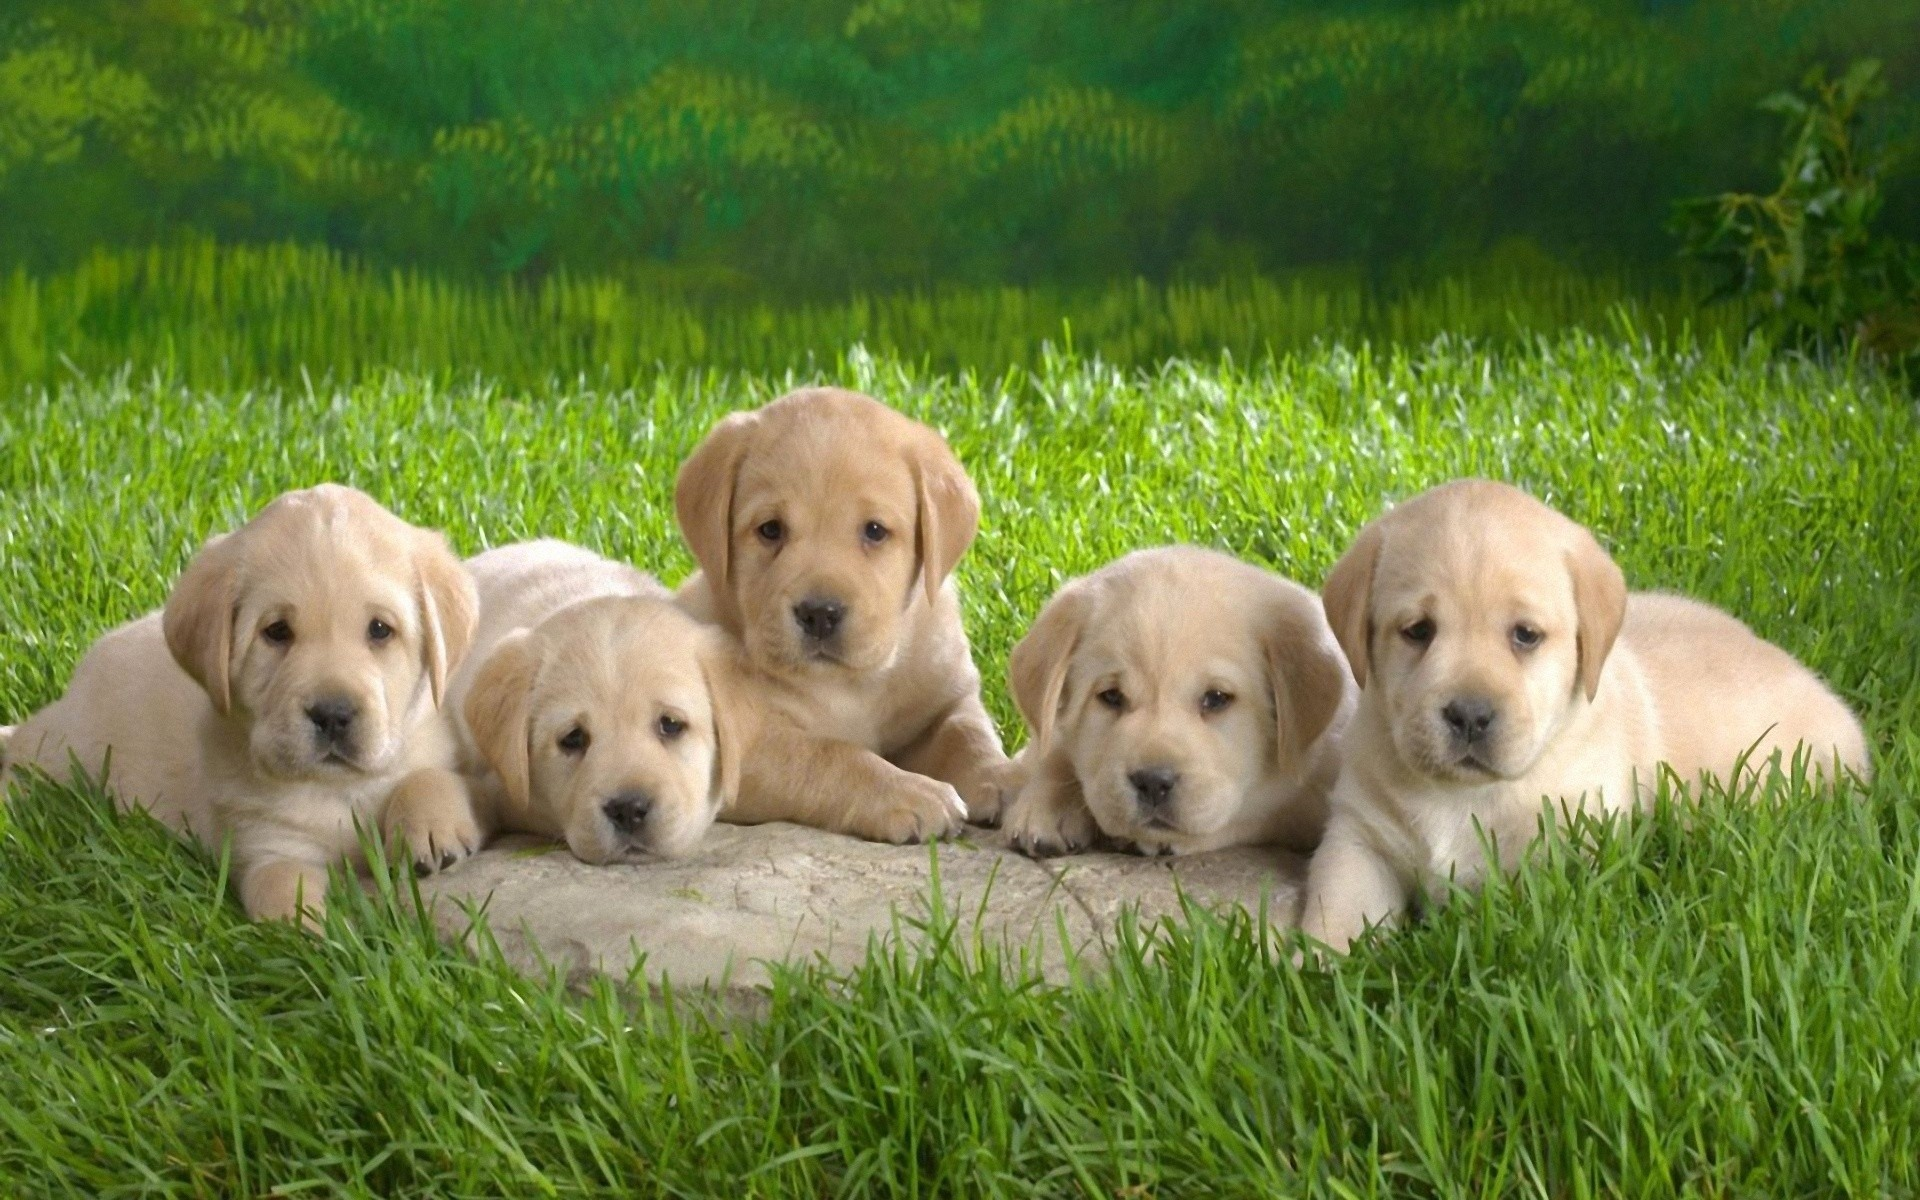 Cute Puppy Desktop Wallpaper 53 Pictures